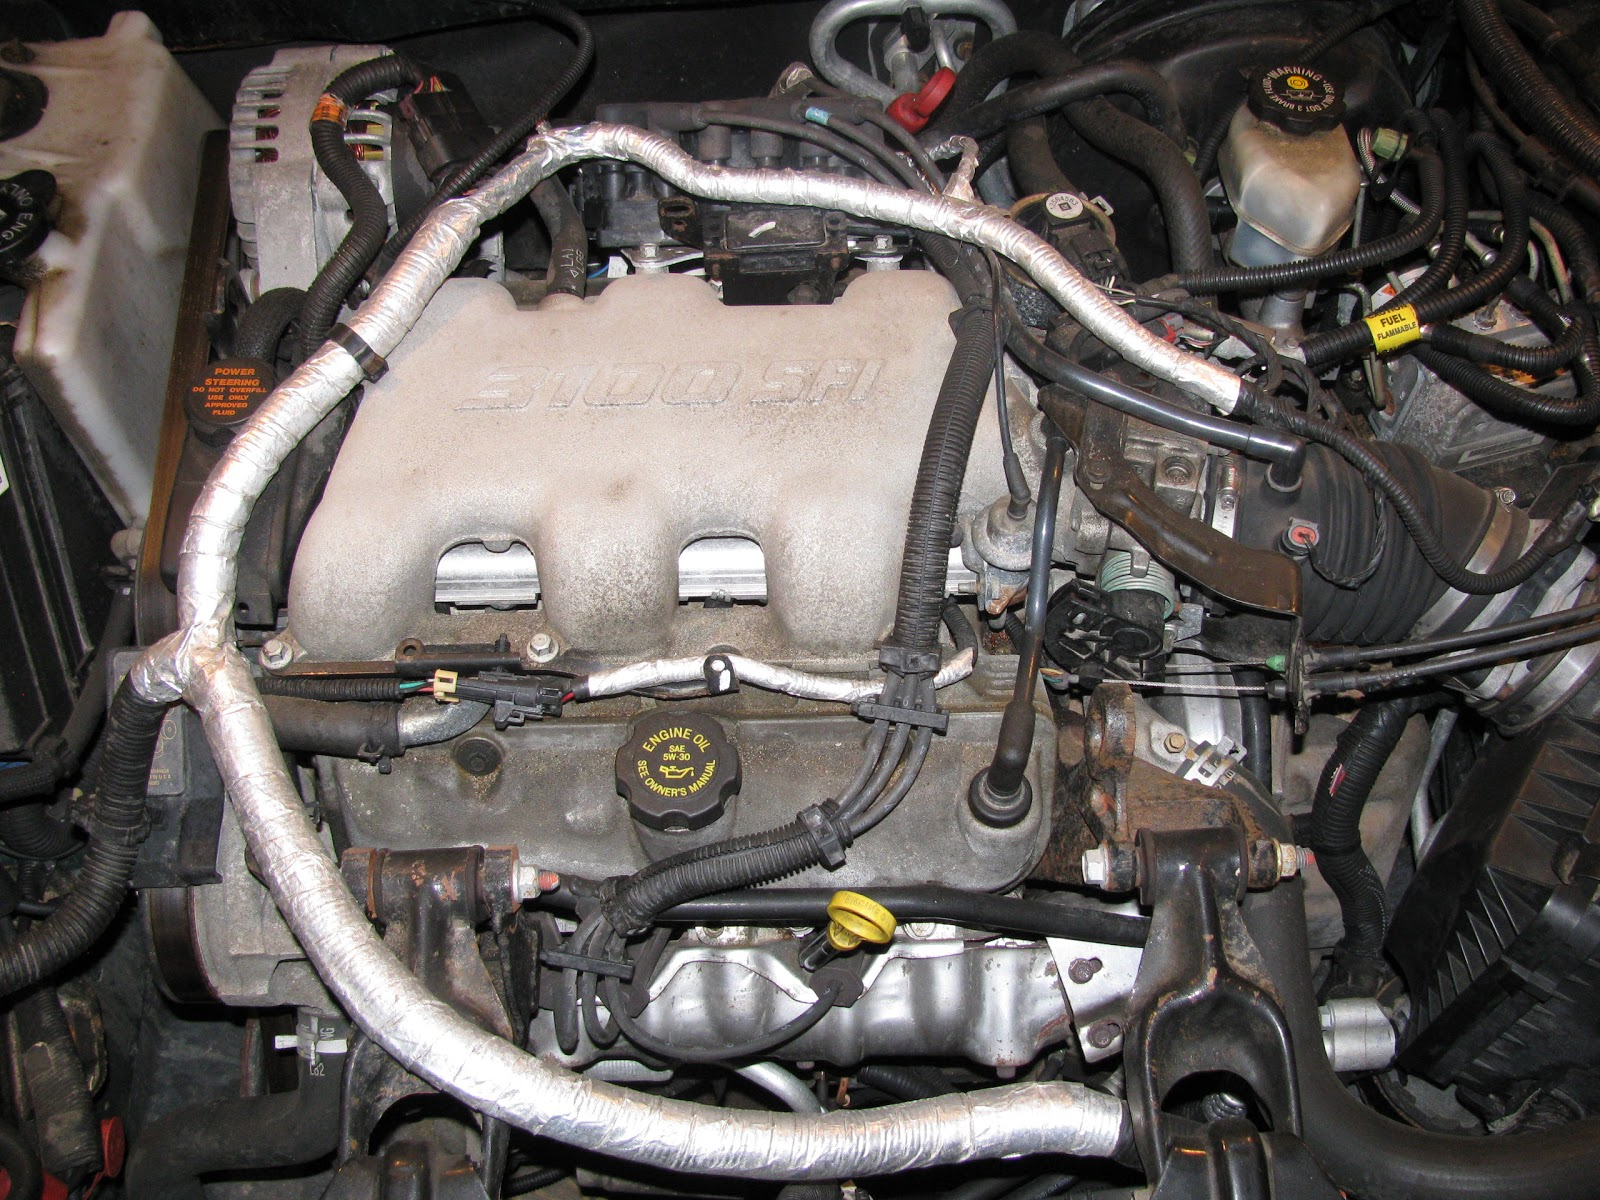 the original mechanic 3 1l engine gm replacing intake manifold 2002 pontiac grand prix intake manifold gasket diagram wiring [ 1600 x 1200 Pixel ]